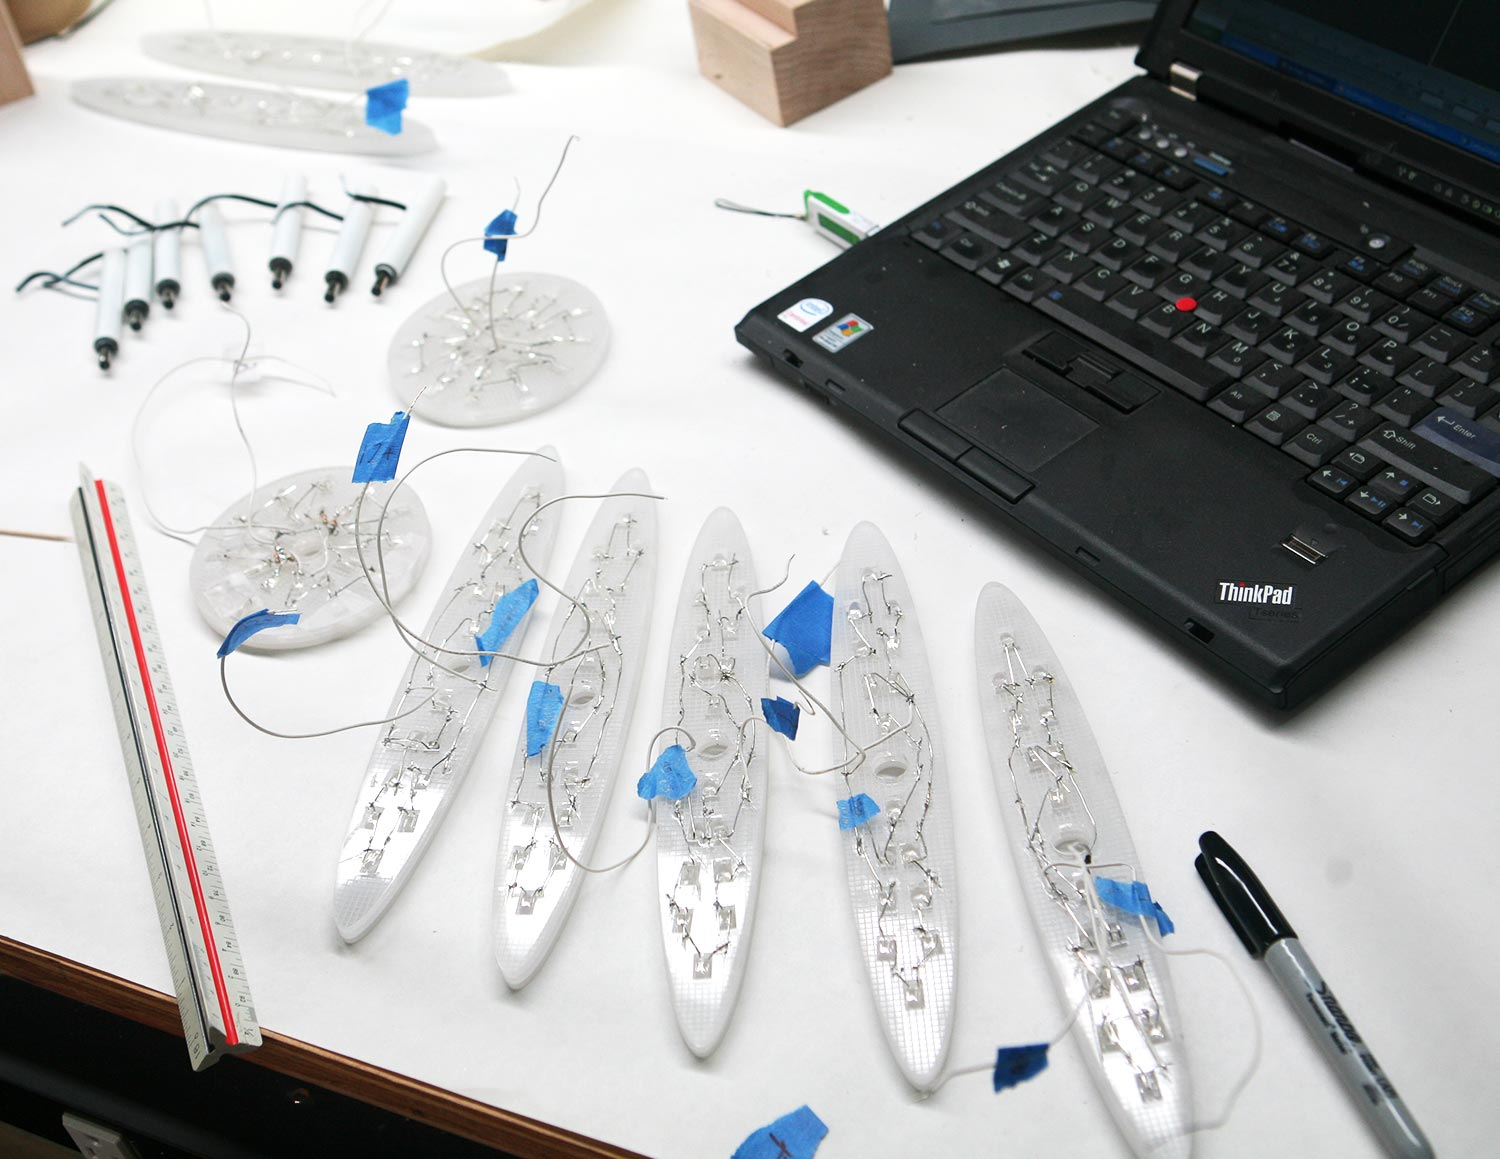 led-electronics-model-making.jpg